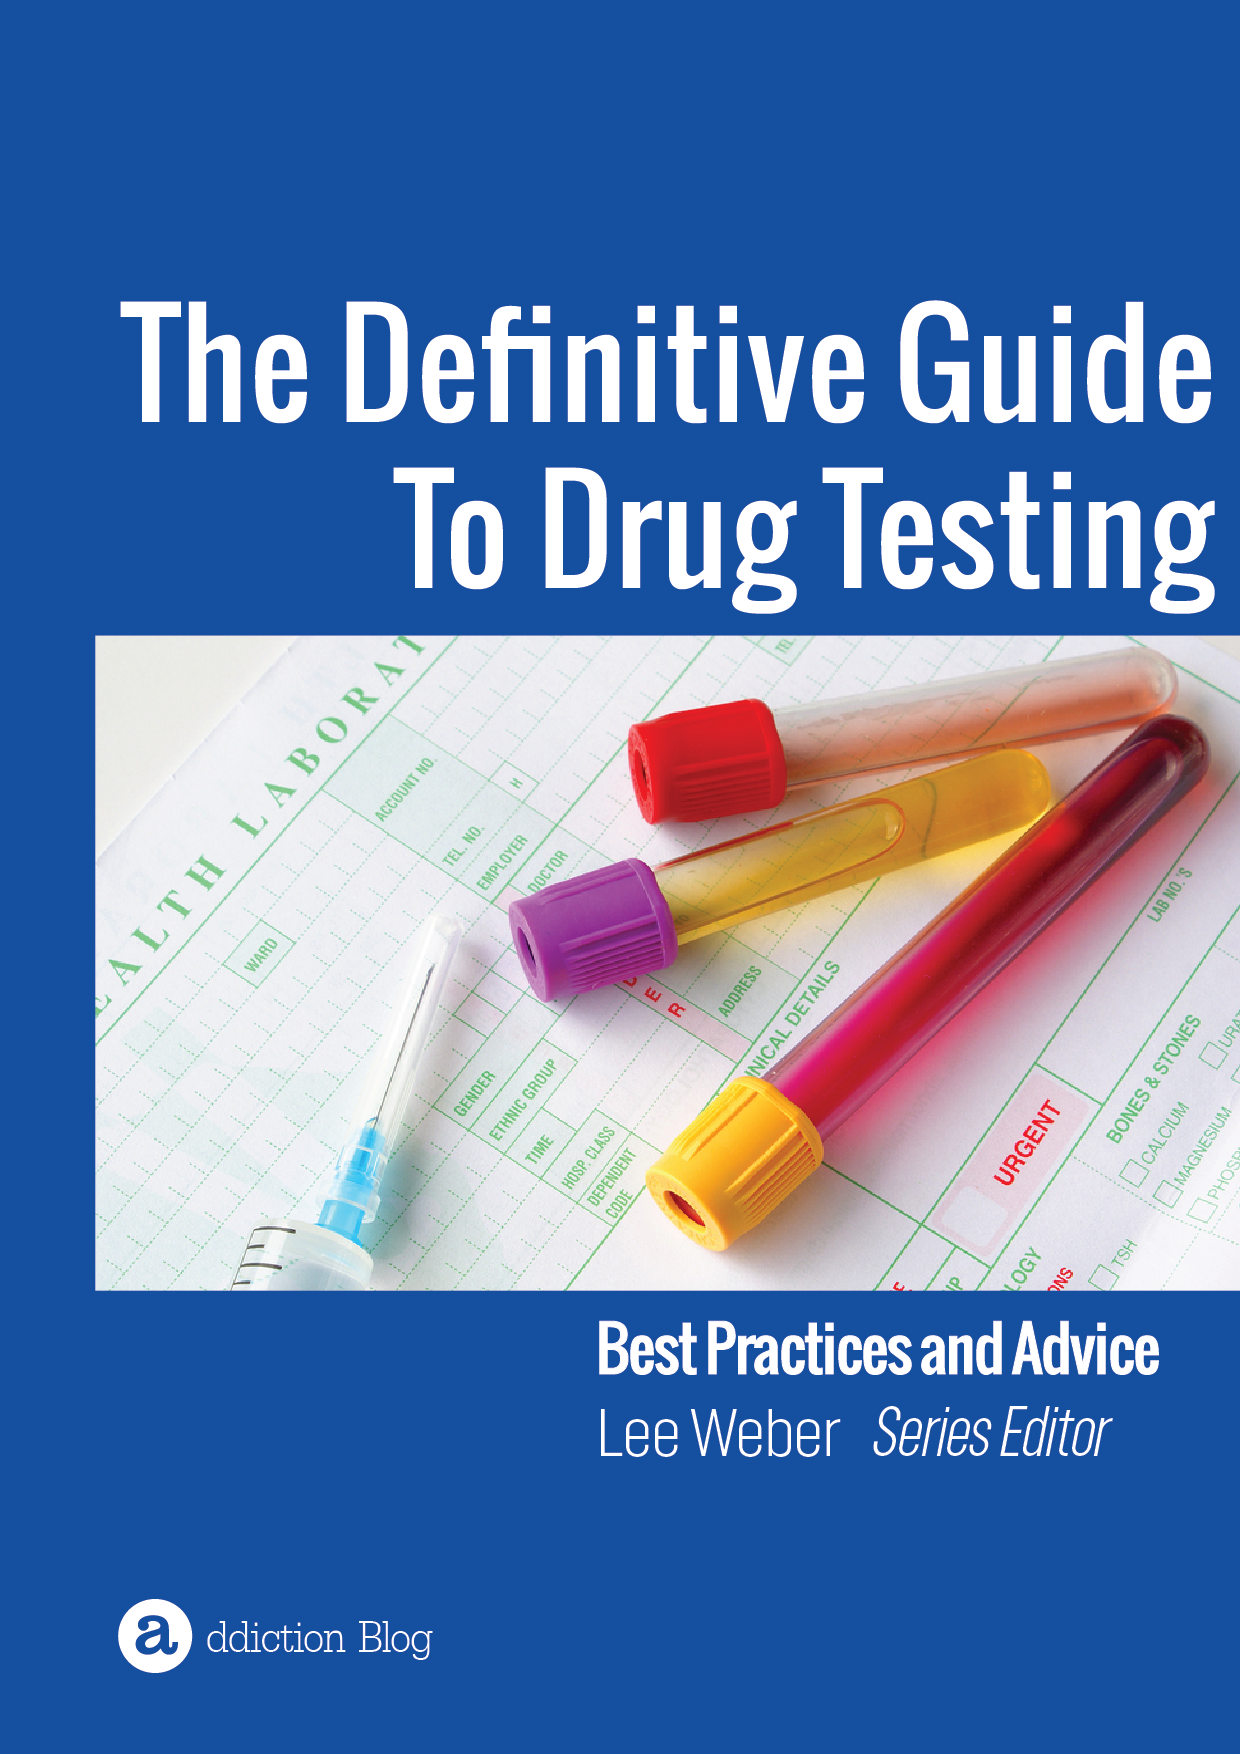 The Definitive Guide to Drug Testing